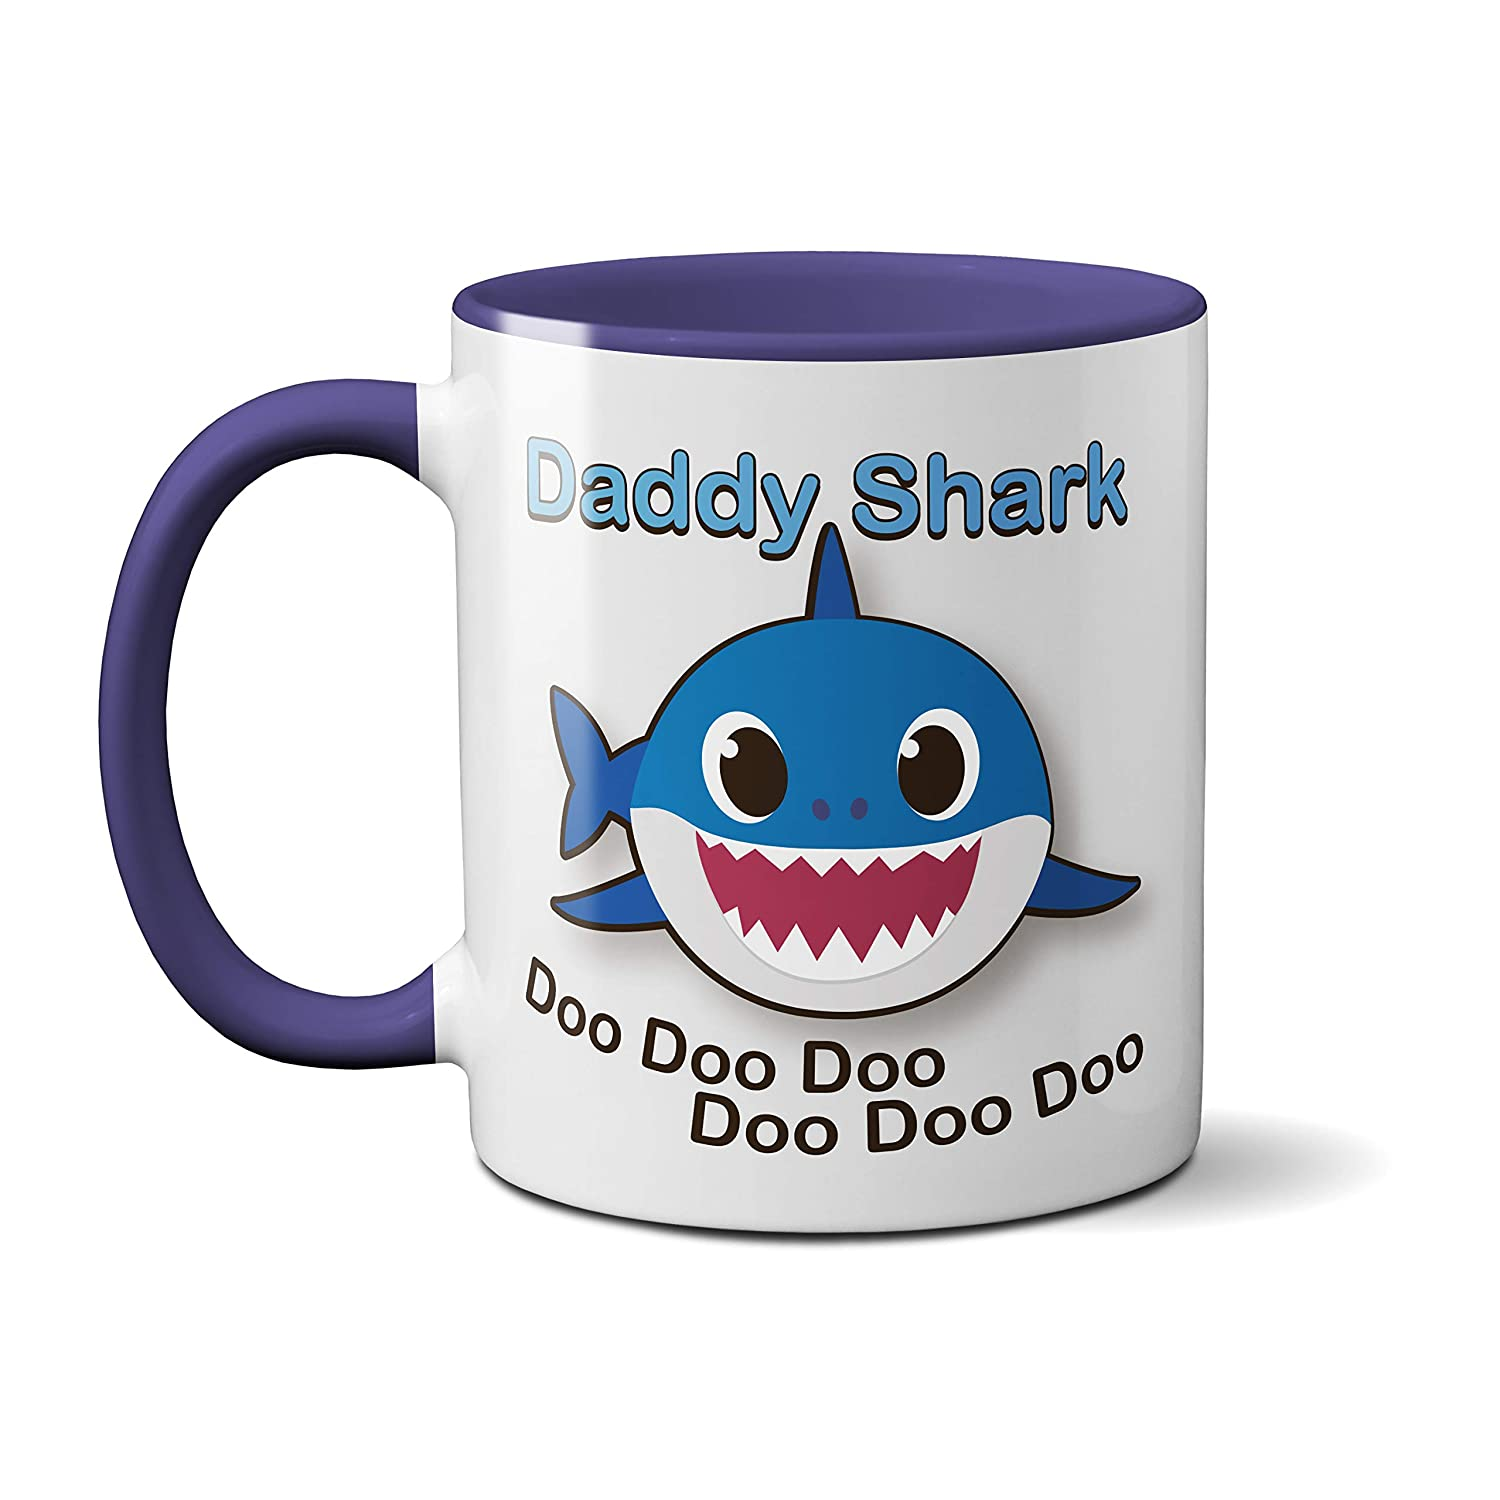 Baby Shark Family Mugs - Cute Adorable - Funny Novelty - Kids Adults Boys Girls (Baby Shark) SmartyPants